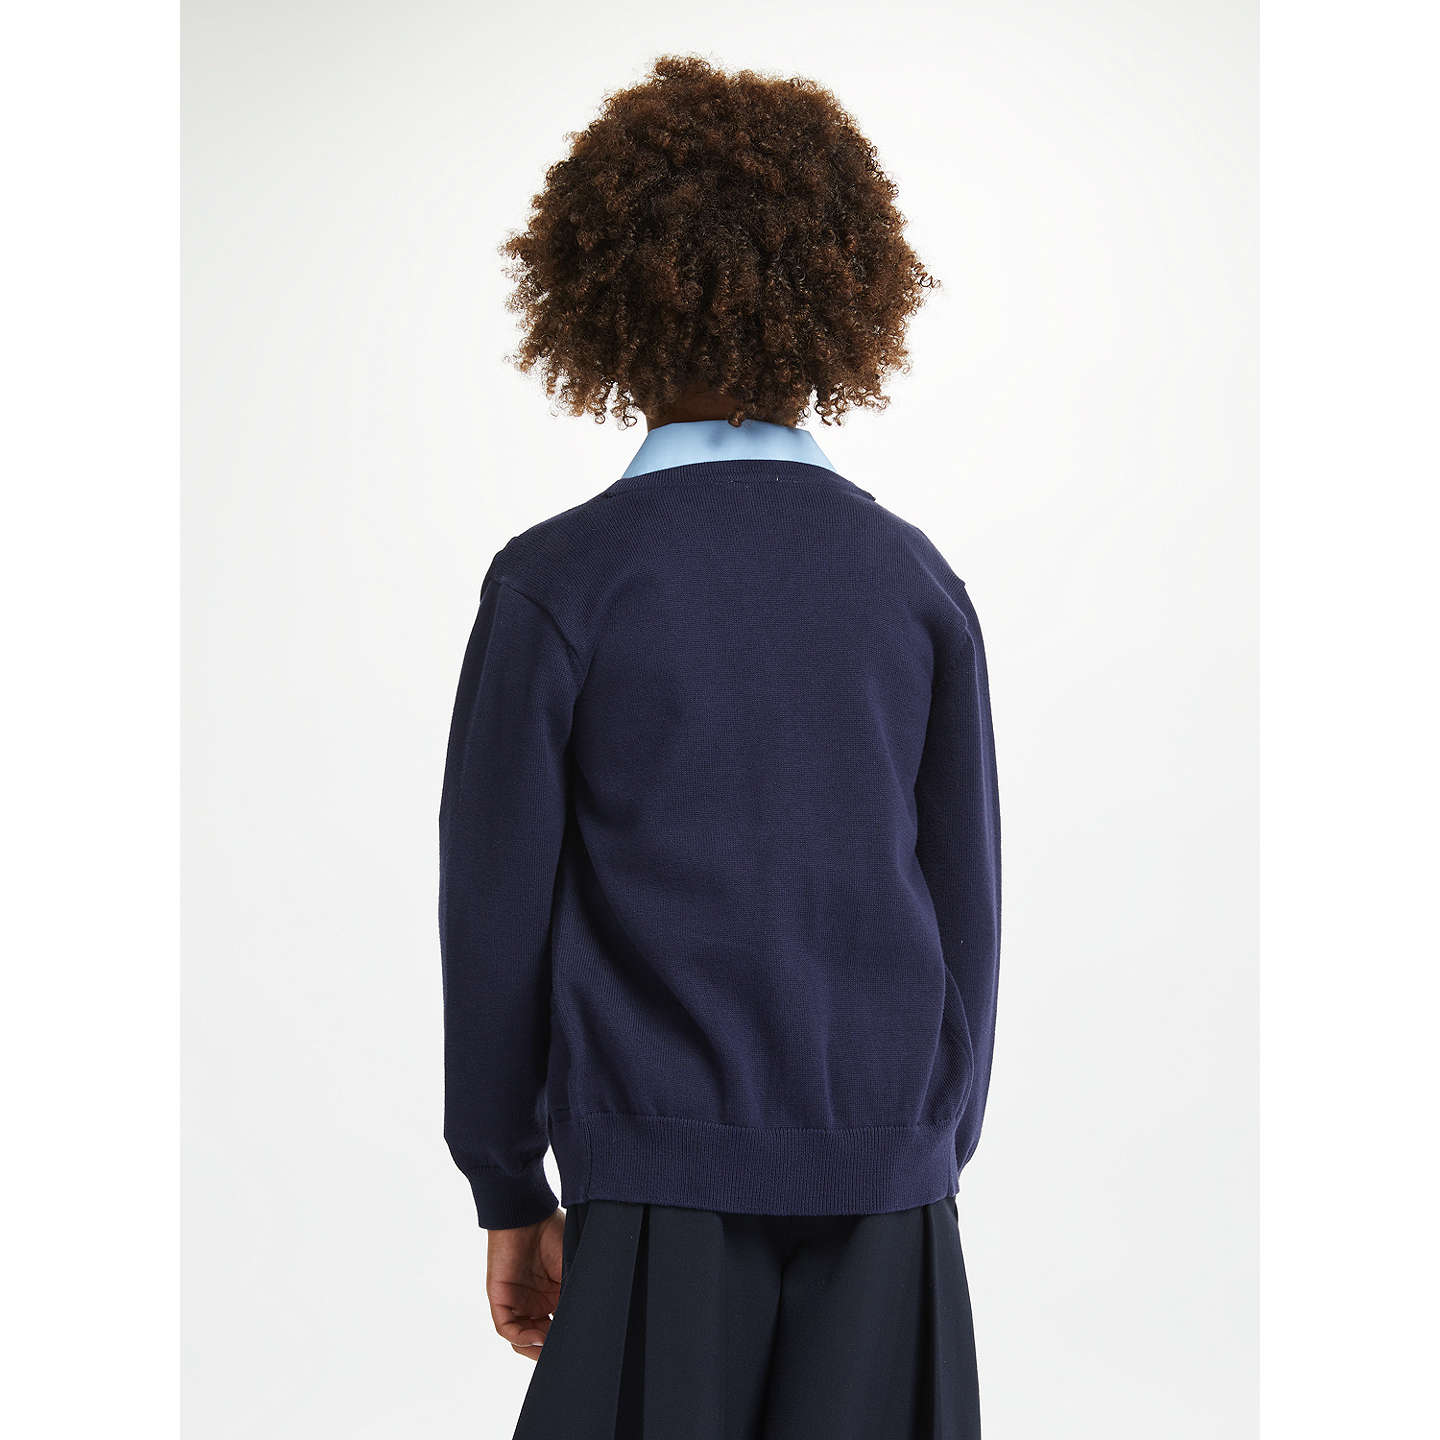 BuyJohn Lewis Cotton Rich V-Neck School Cardigan, Navy, 3-4 years Online at johnlewis.com